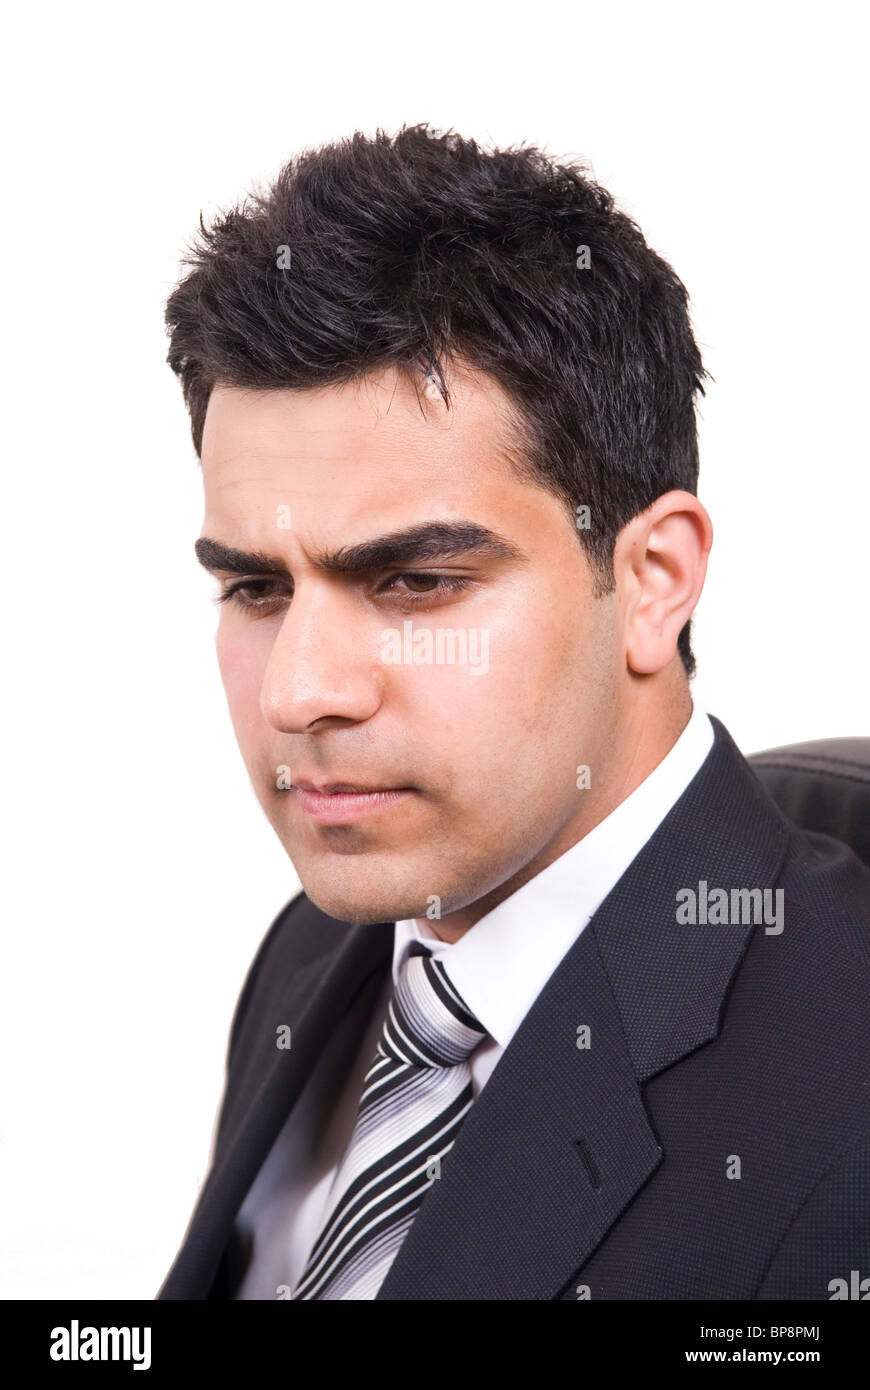 Portrait of a serious Middle Eastern business man thinking against a white background - Stock Image